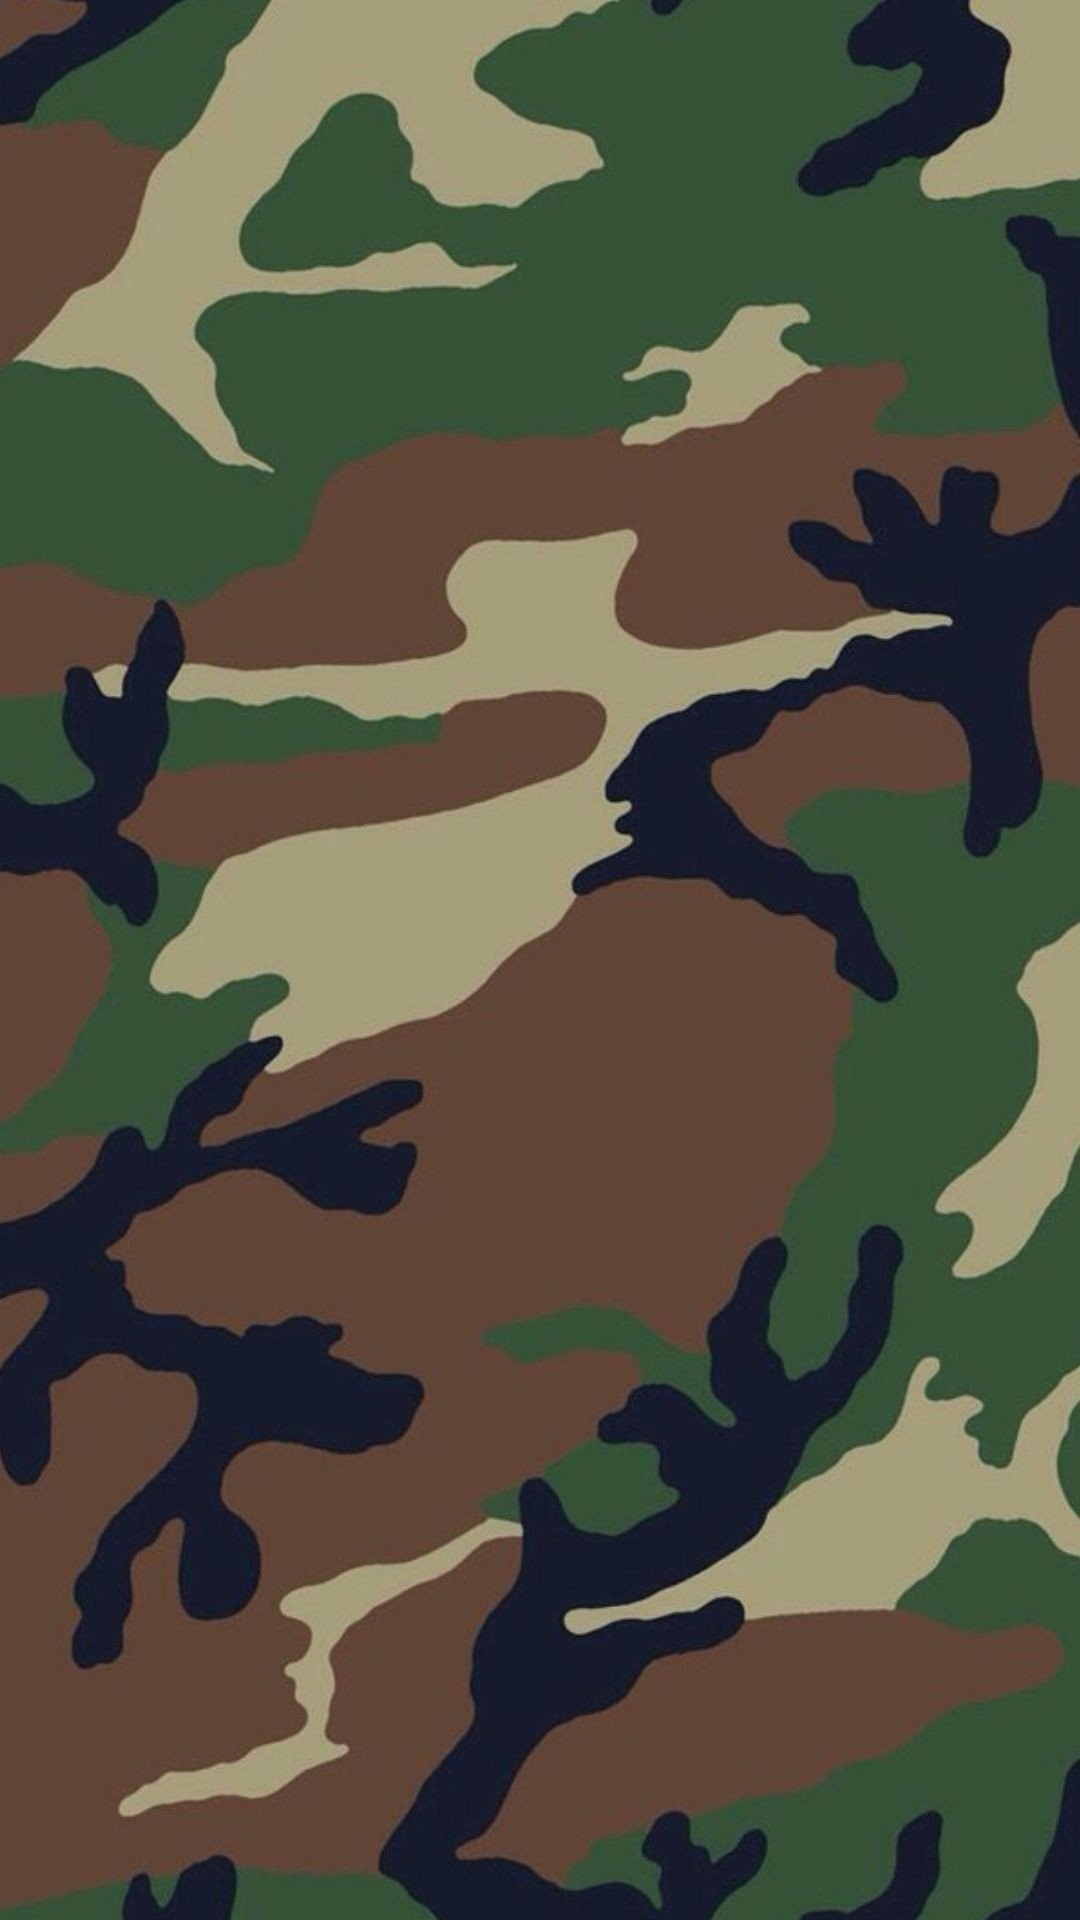 1080x1920 Colorful Wallpaper, Cool Wallpaper, Mobile Wallpaper, Army Wallpaper, Camo  Designs, Bape